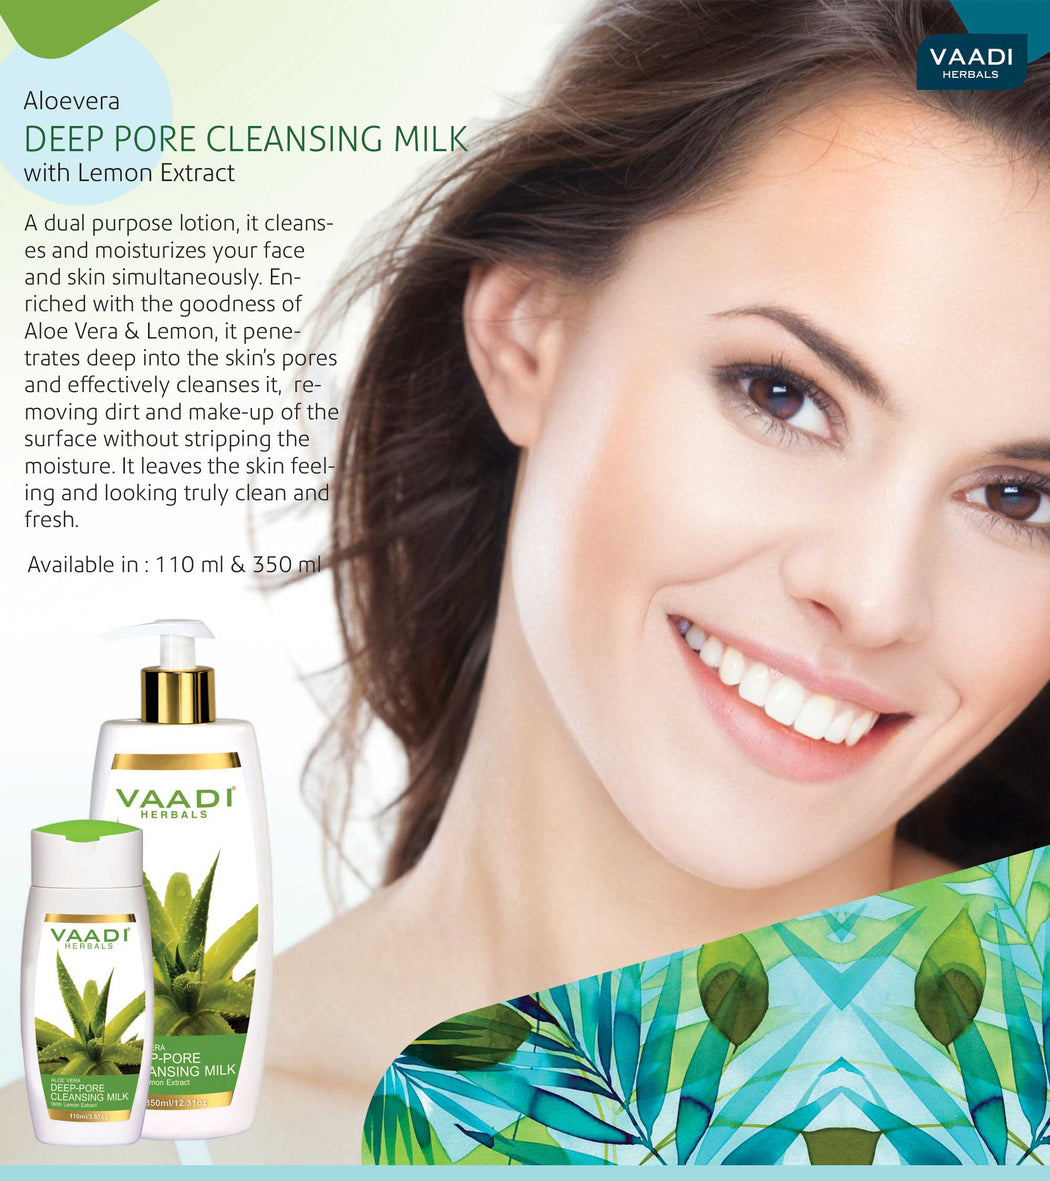 Organic Aloe Vera Deep Pore Cleansing Milk with Lemon Extract - Cleanses Skin (3 x 110 ml/ 4 fl oz)